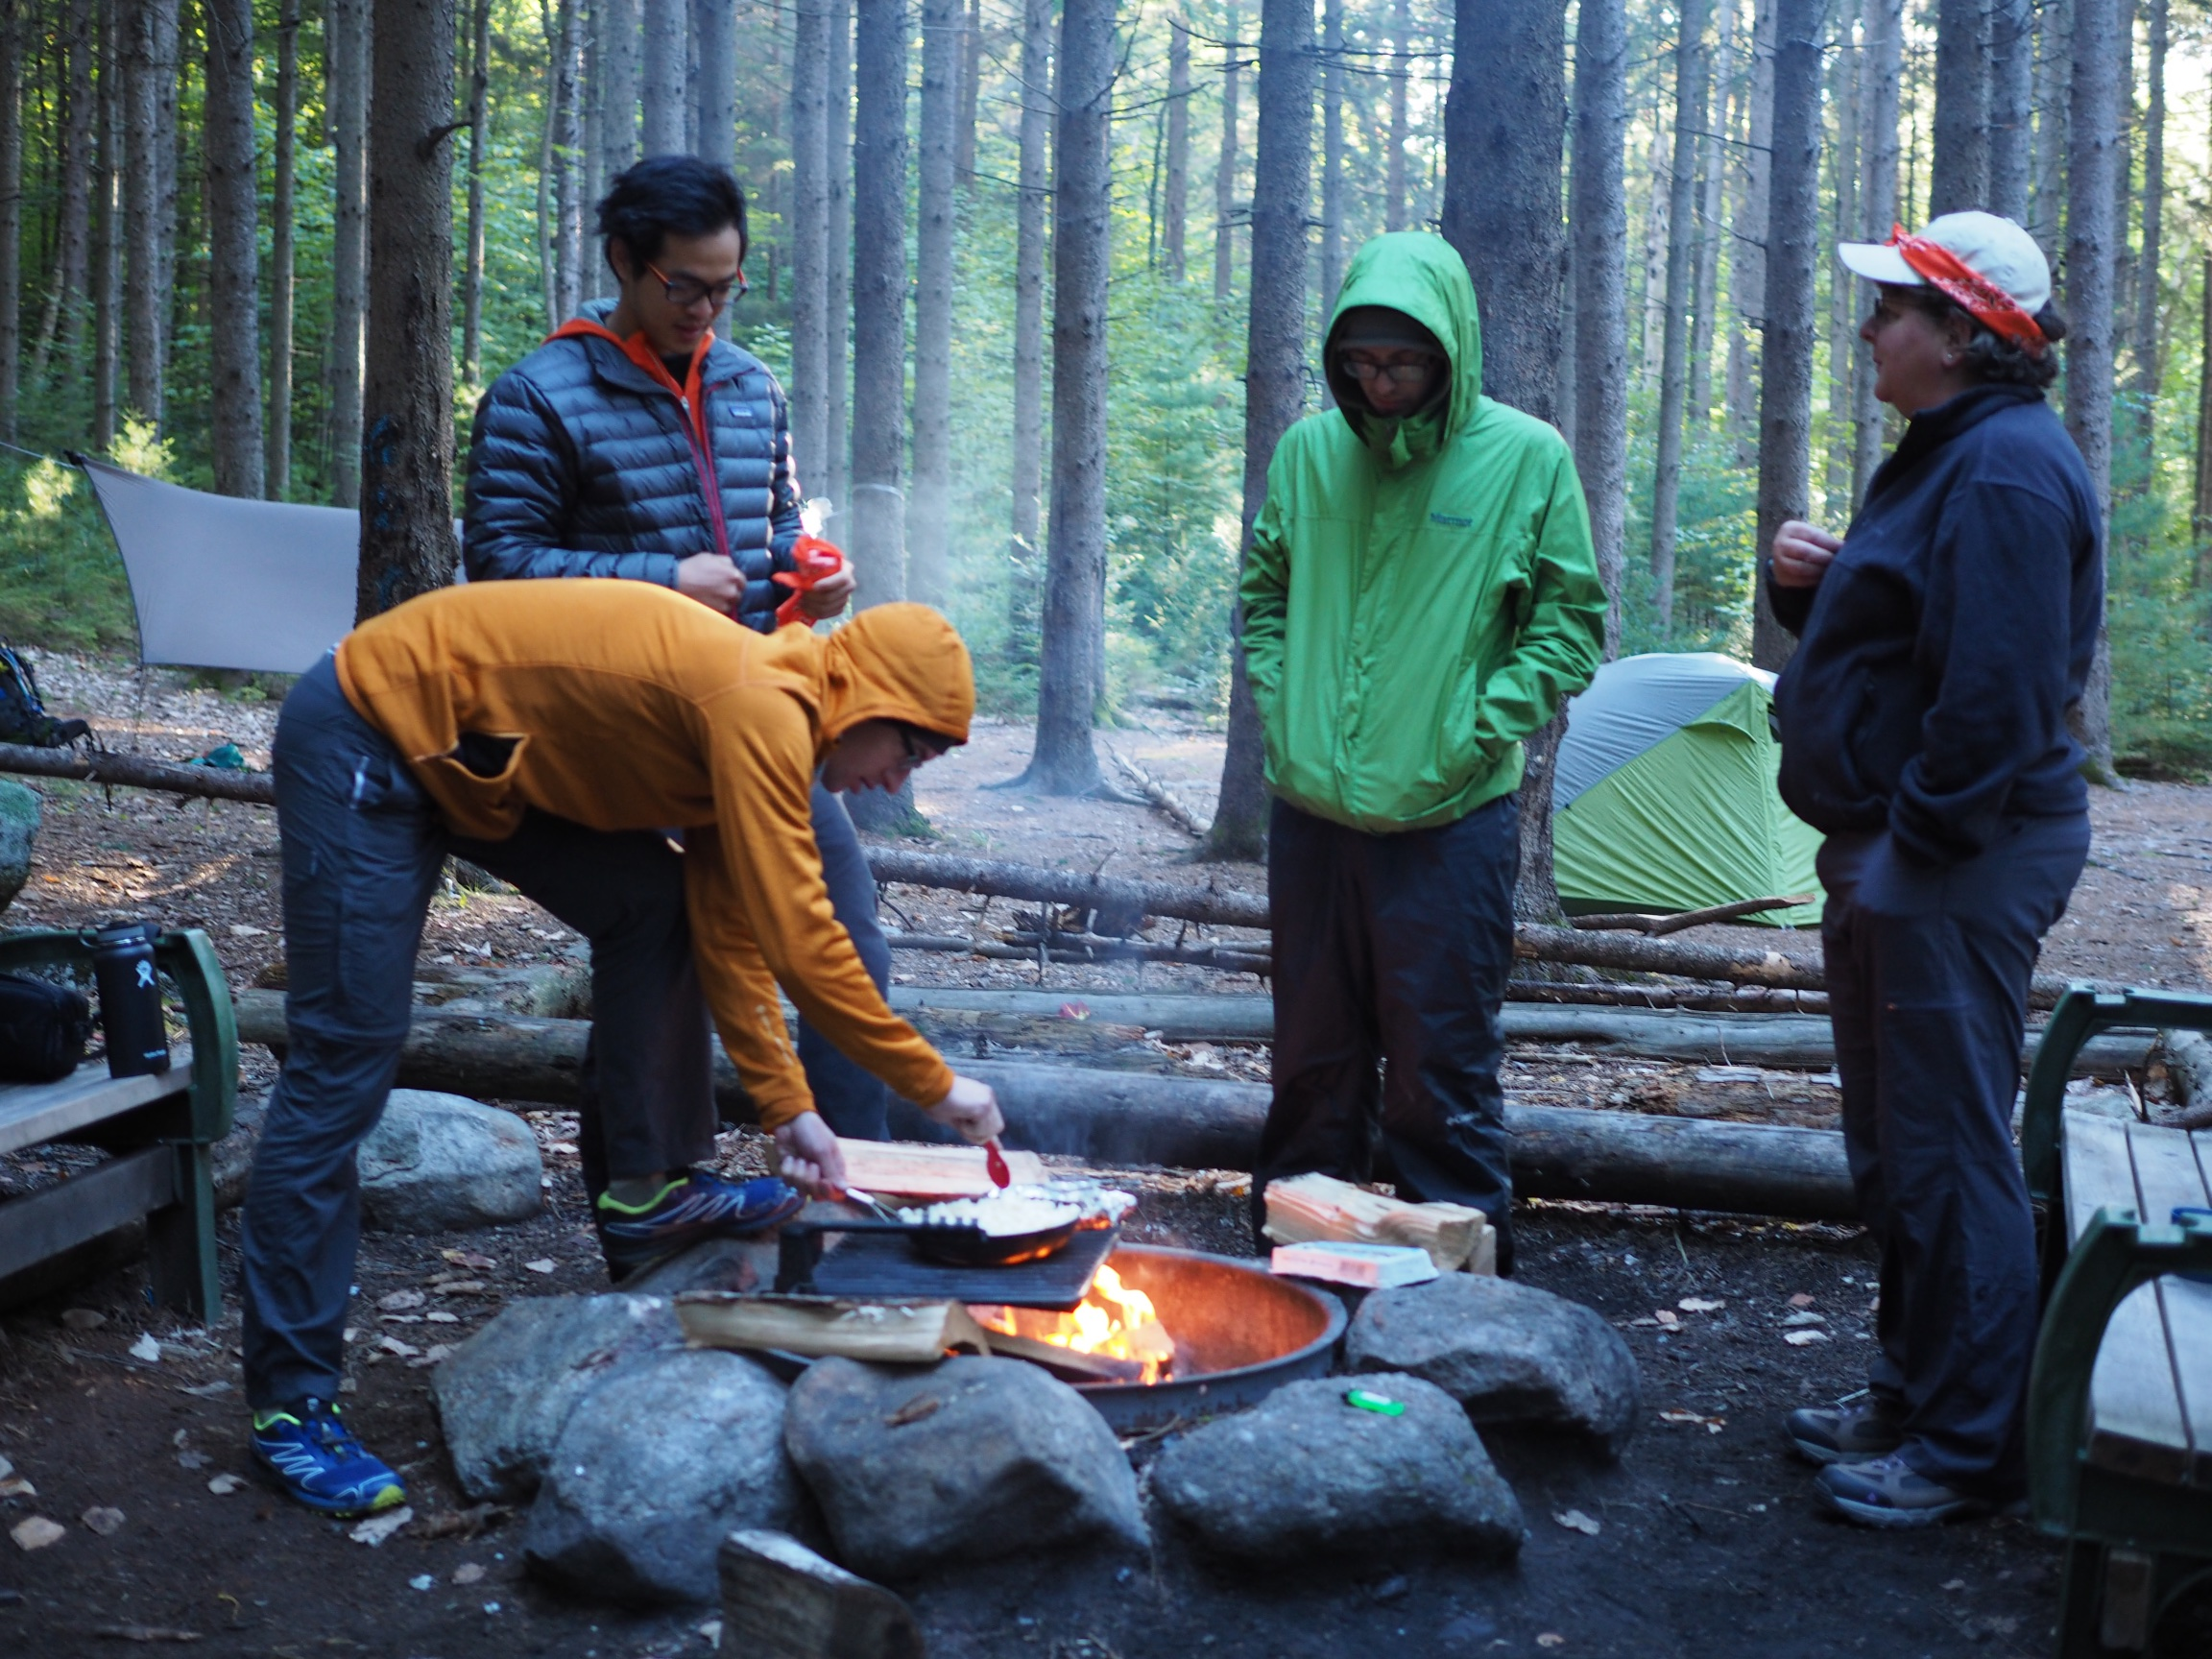 Talking around the camp fire (image credit: M. Swoveland)